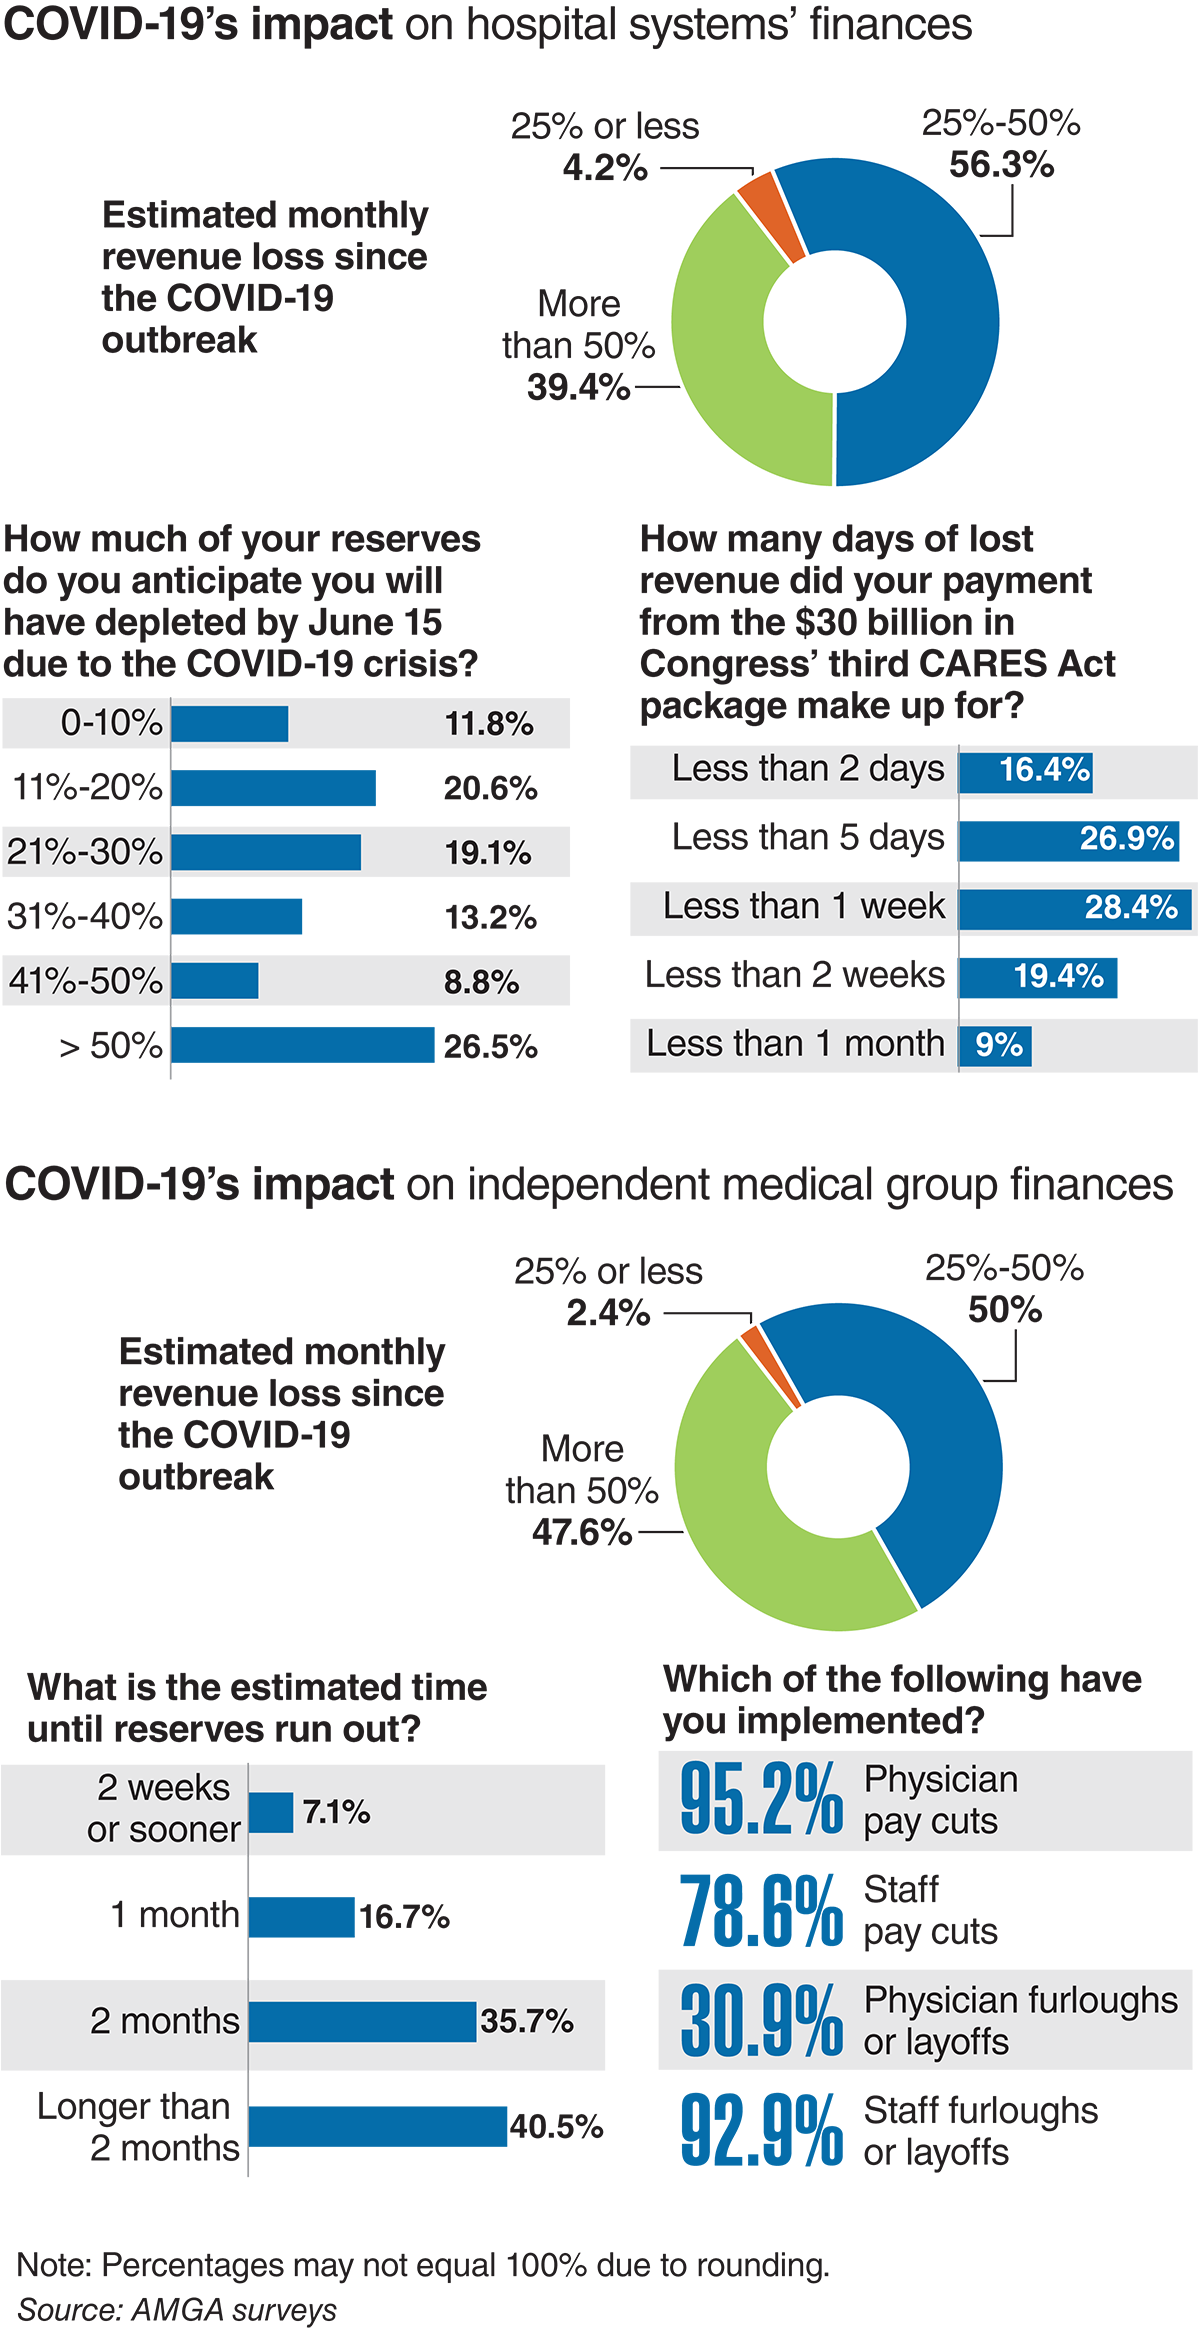 COVID-19's impact on the finances of hospital systems and independent medical groups